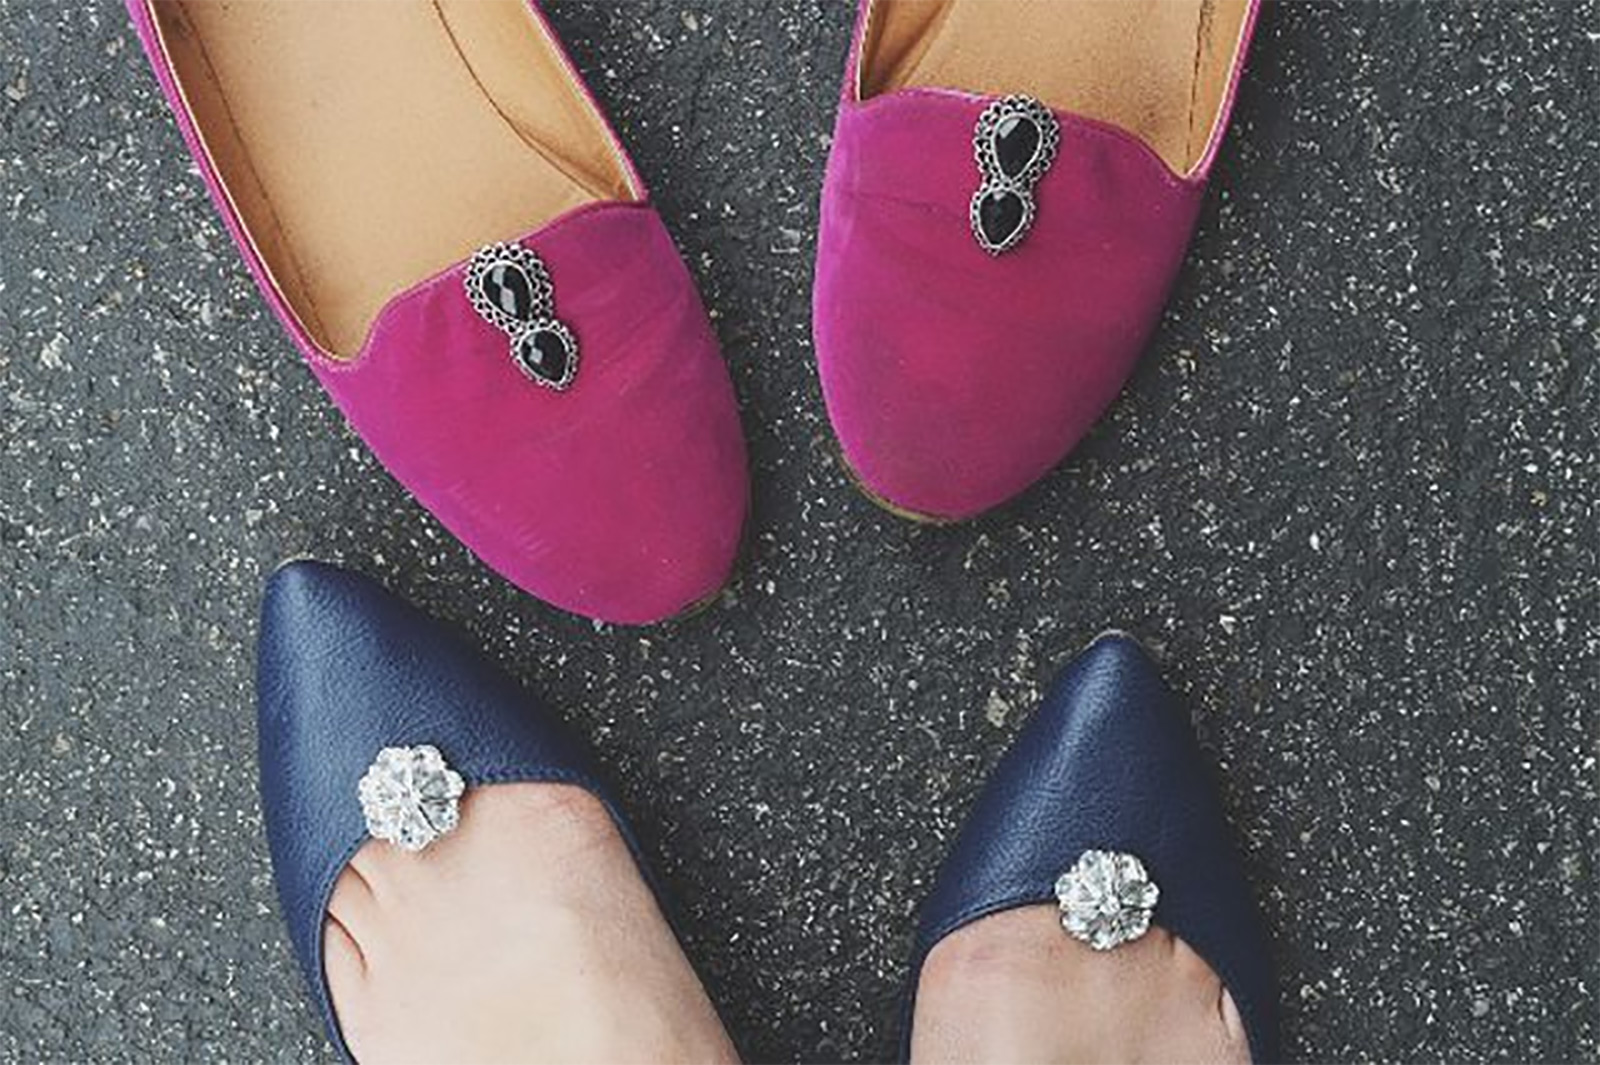 https://www.ehow.com/ehow-style/blog/fancy-feet-dress-up-your-shoes-with-reusable-shoe-clips/